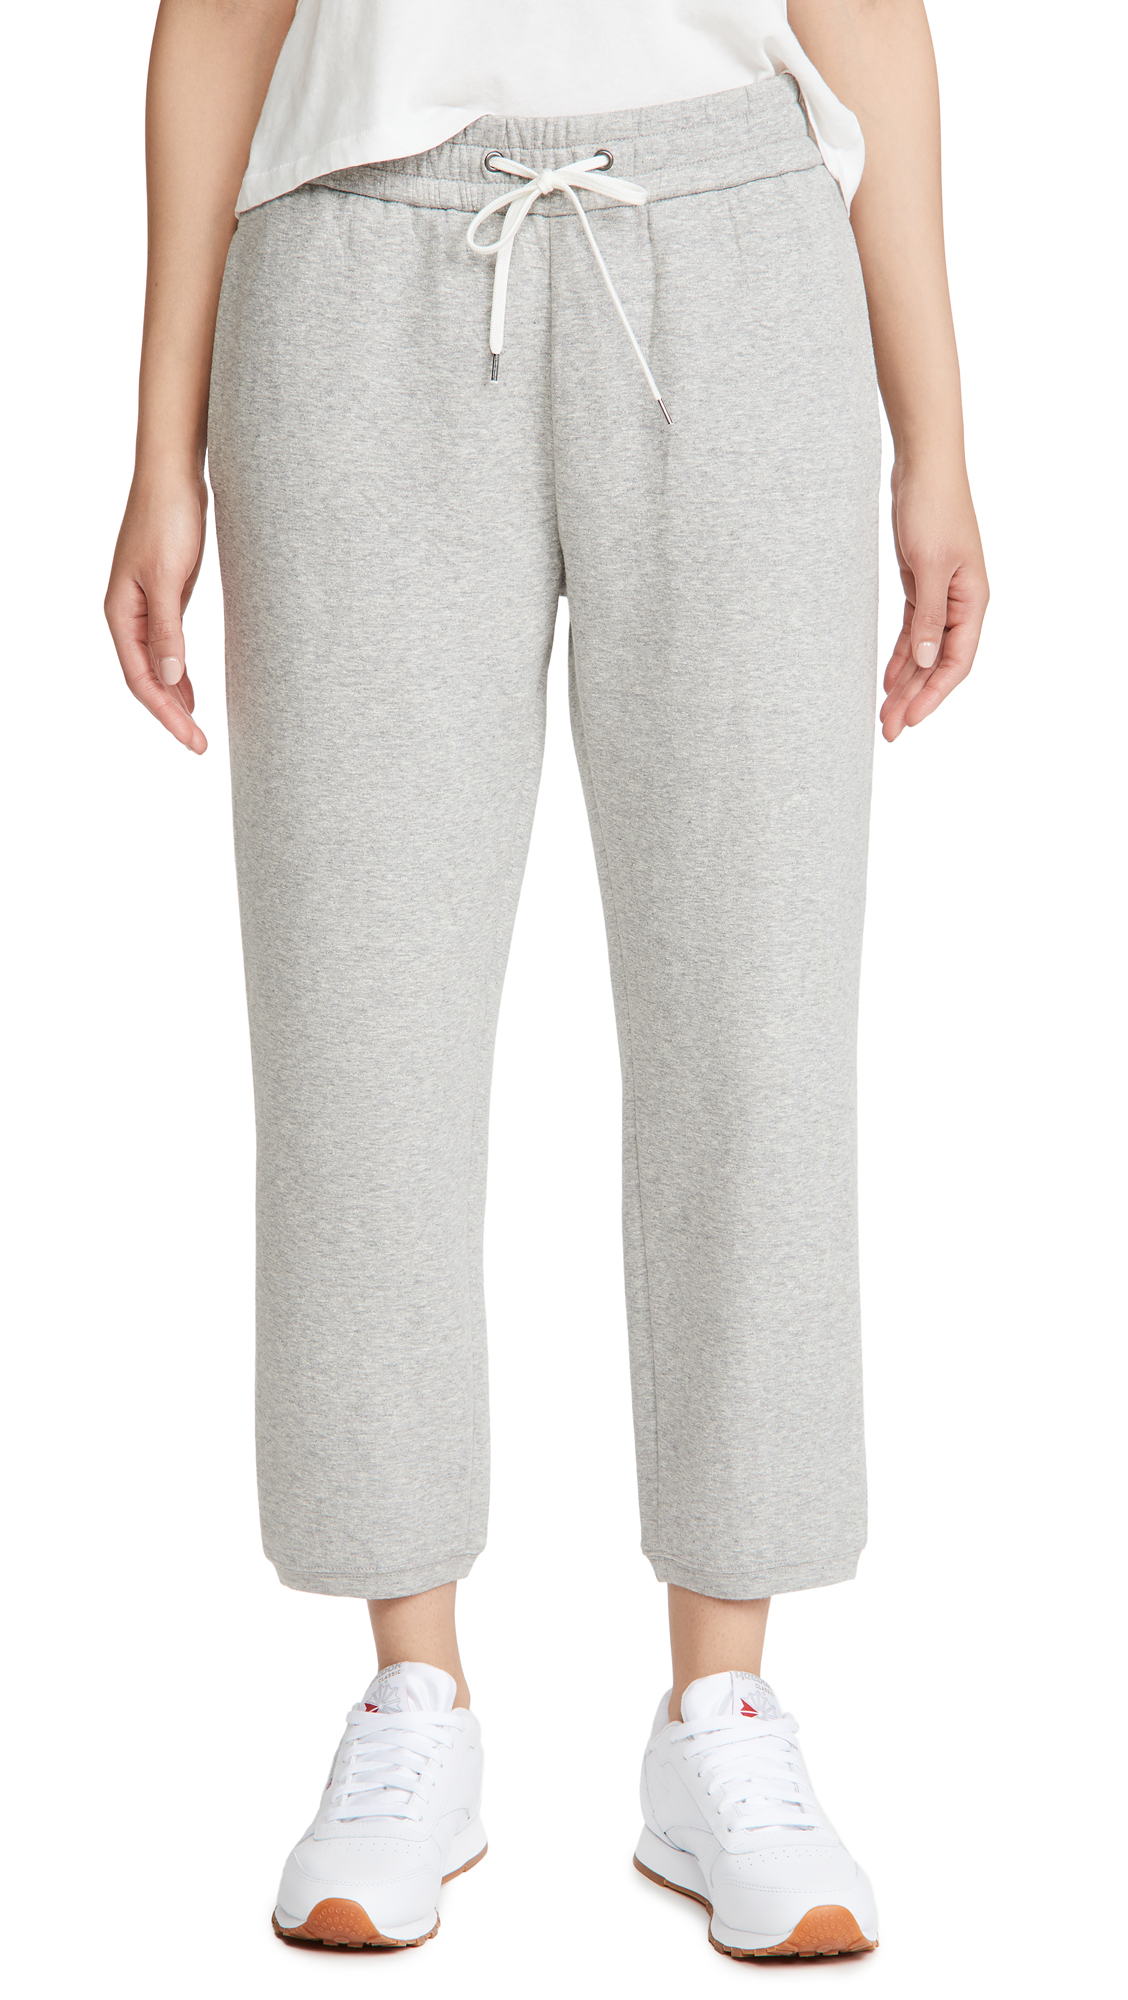 James Perse Relaxed Sweatpants